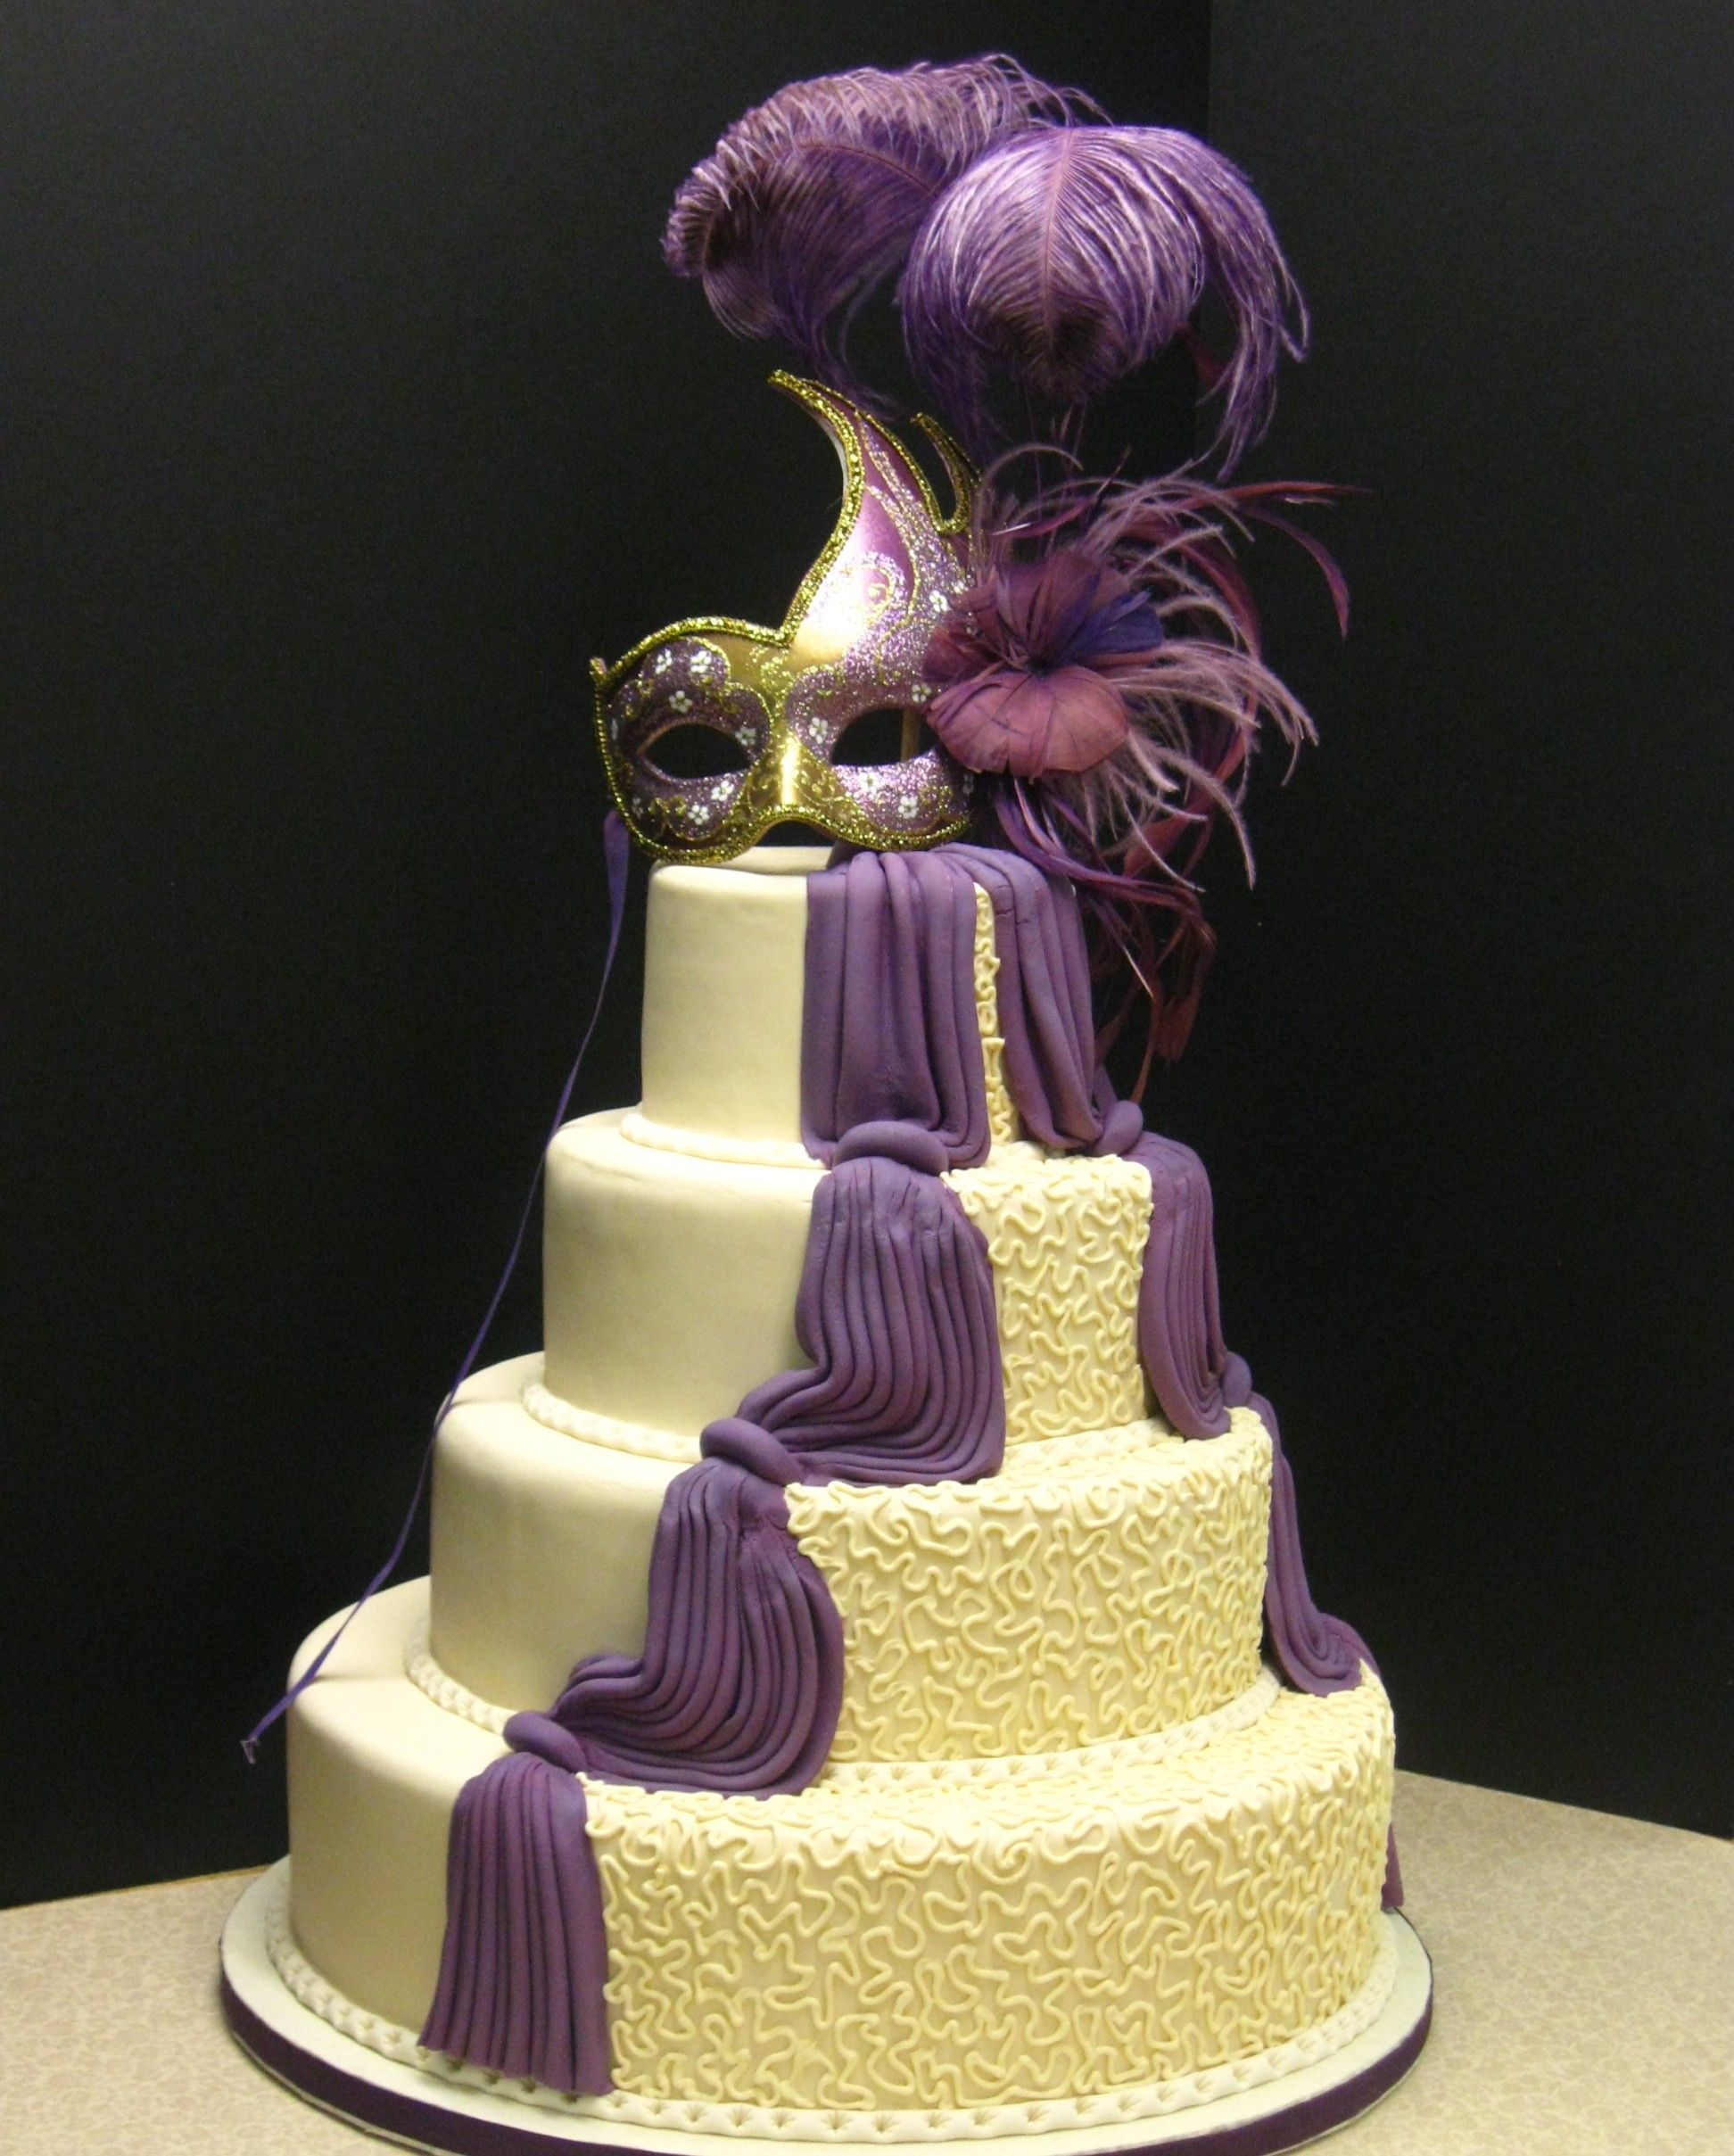 Masquerade Ball Wedding Ideas: Dramatic Wedding Cake With Purple Fondant Draping And A